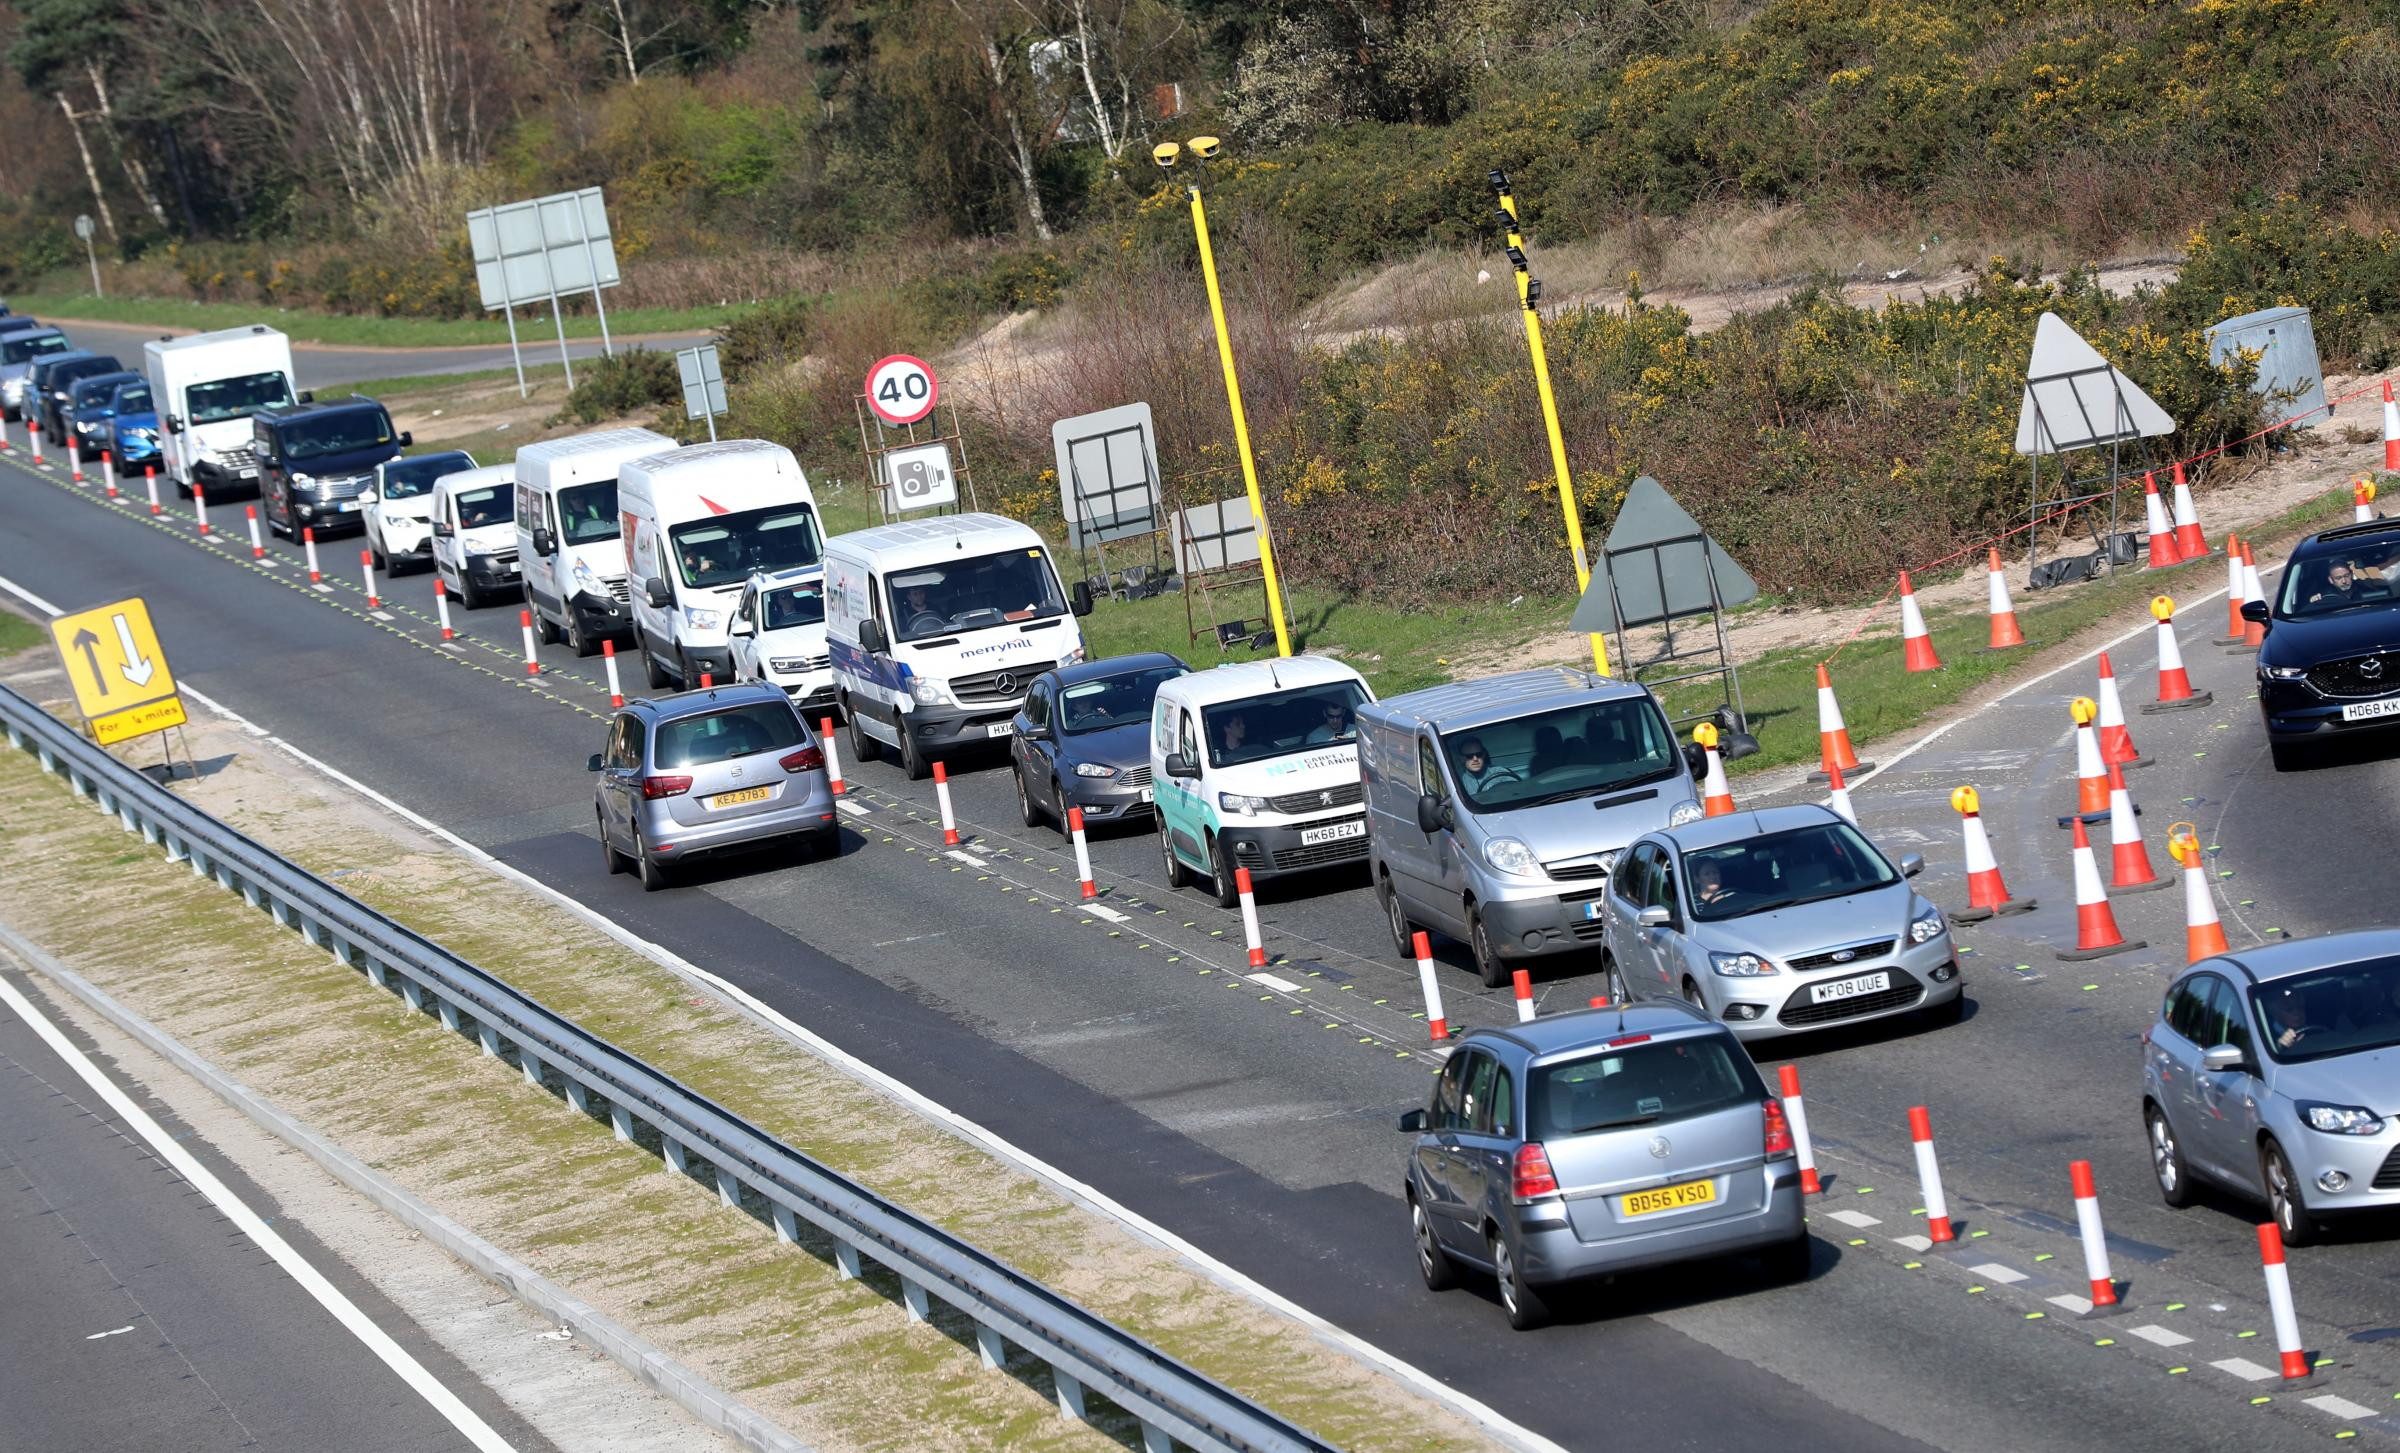 Average speed cameras on the A338 Spur Road not working